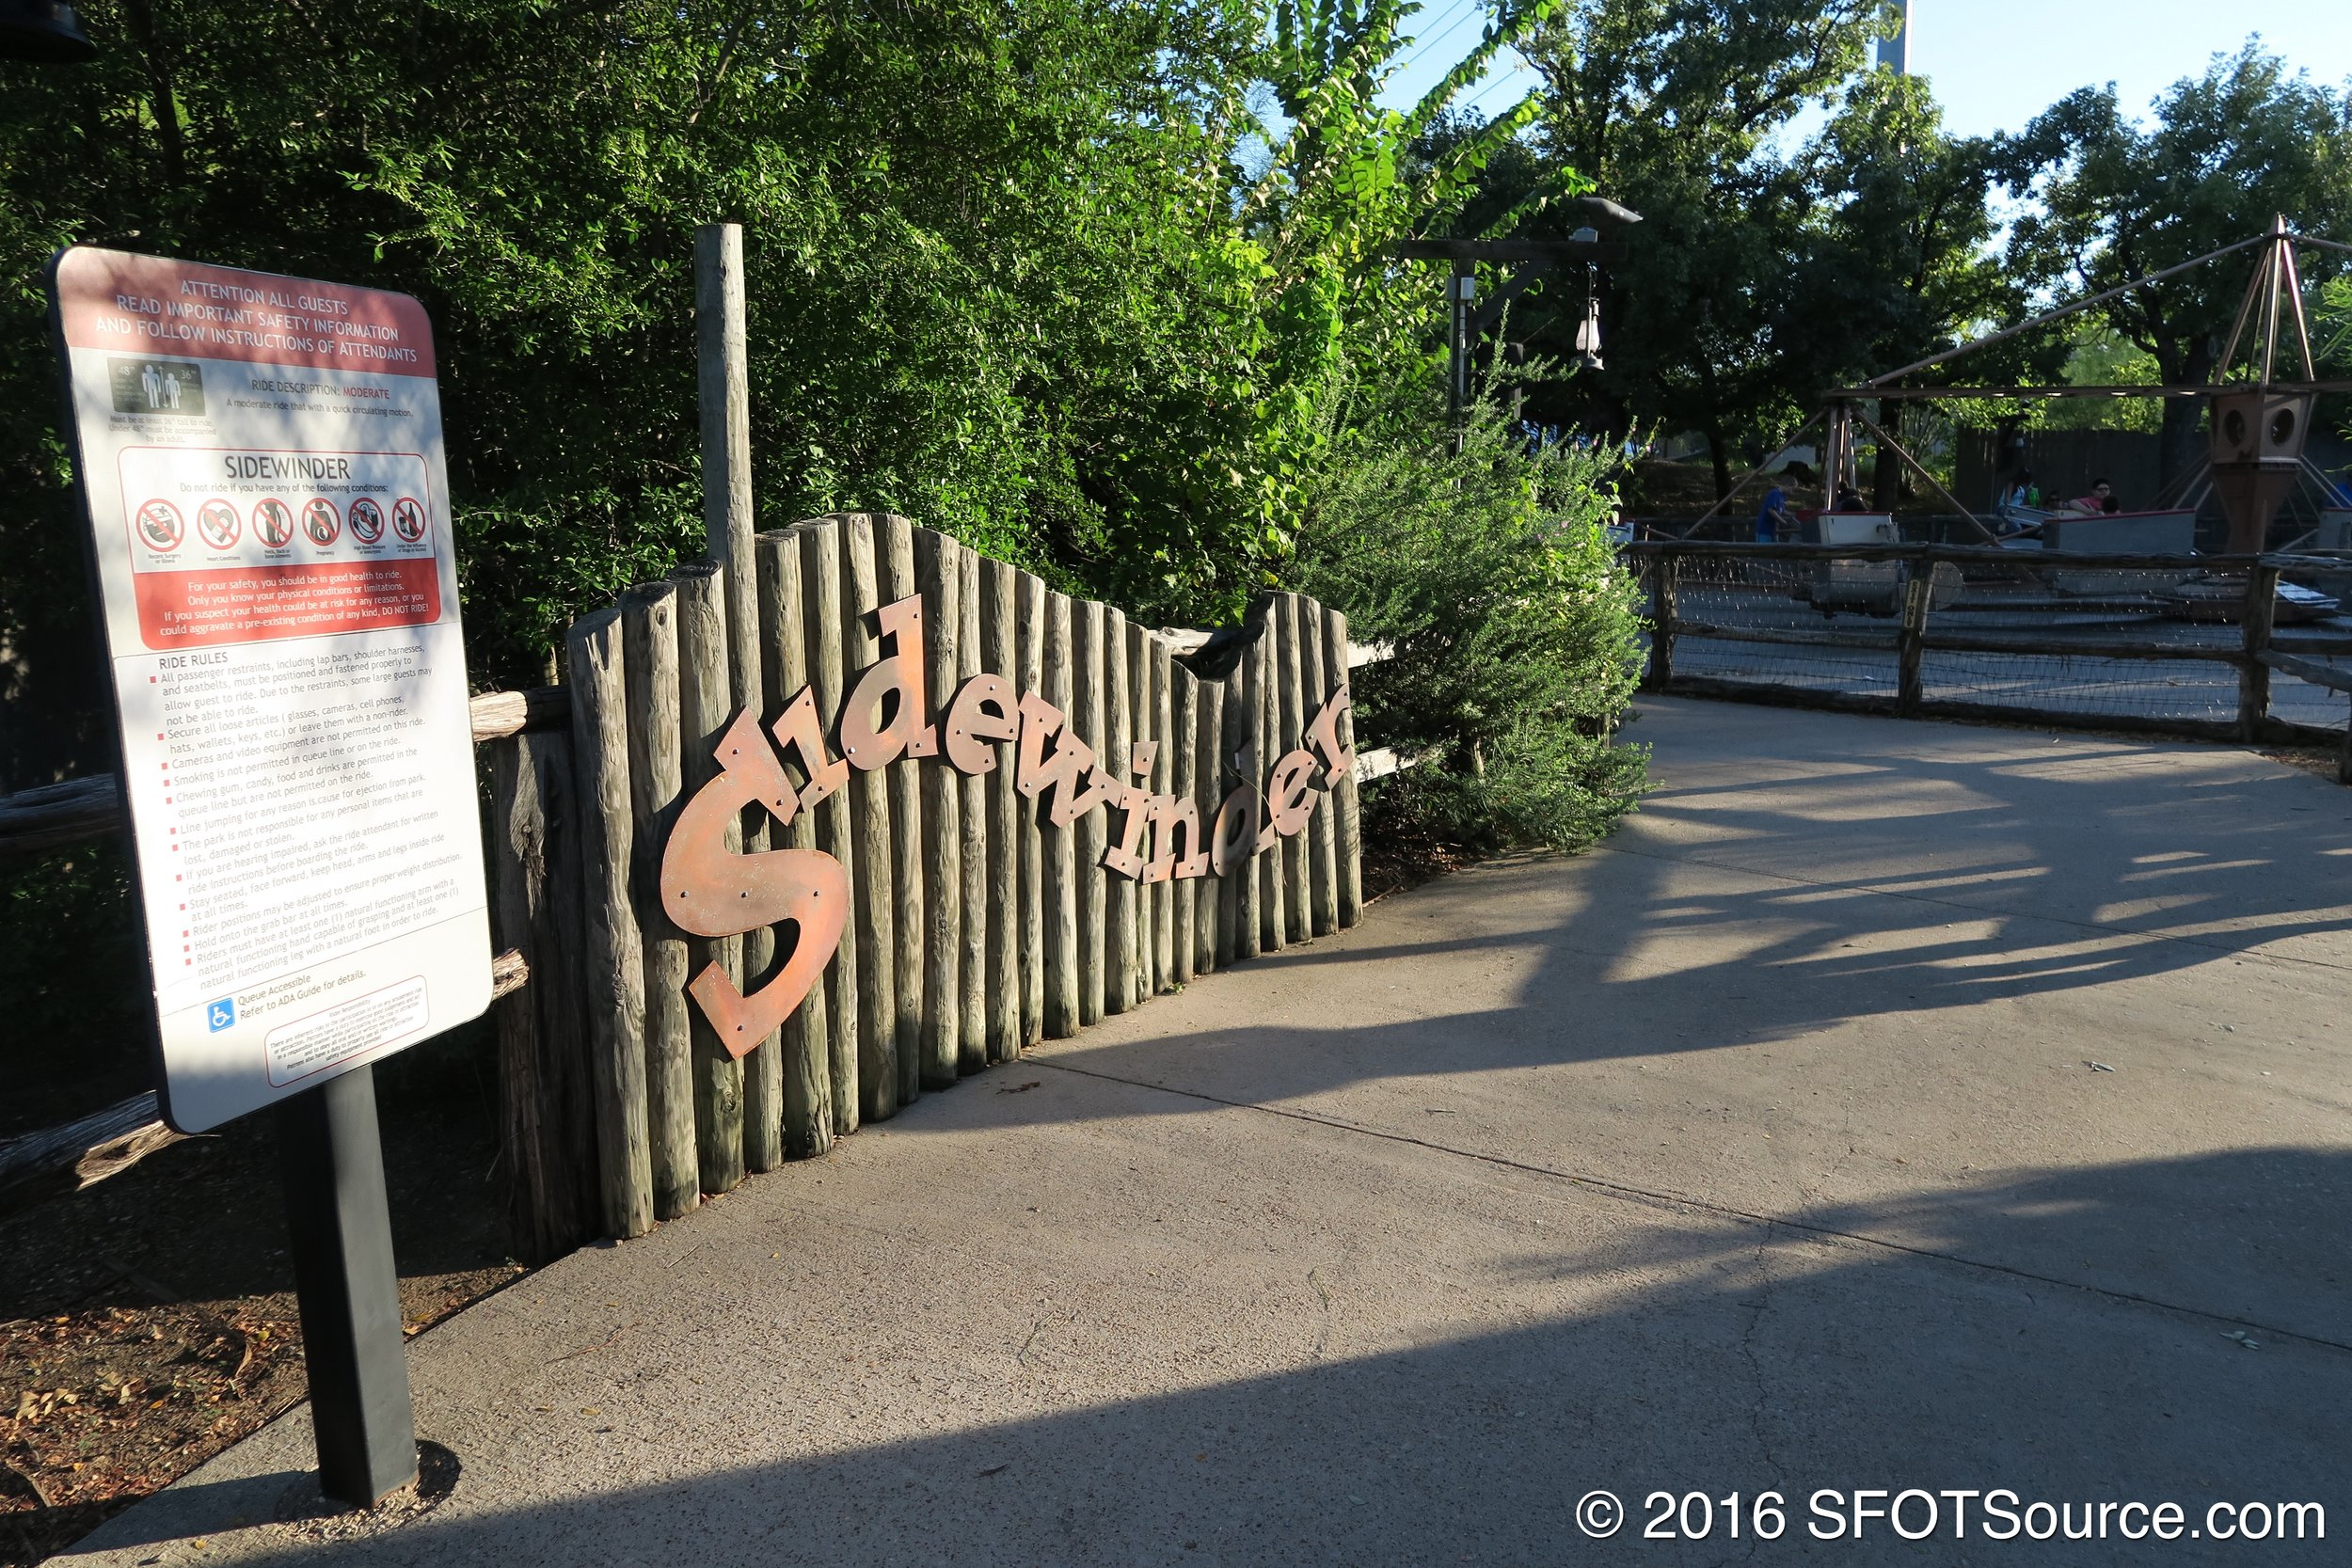 The main entrance to Sidewinder.